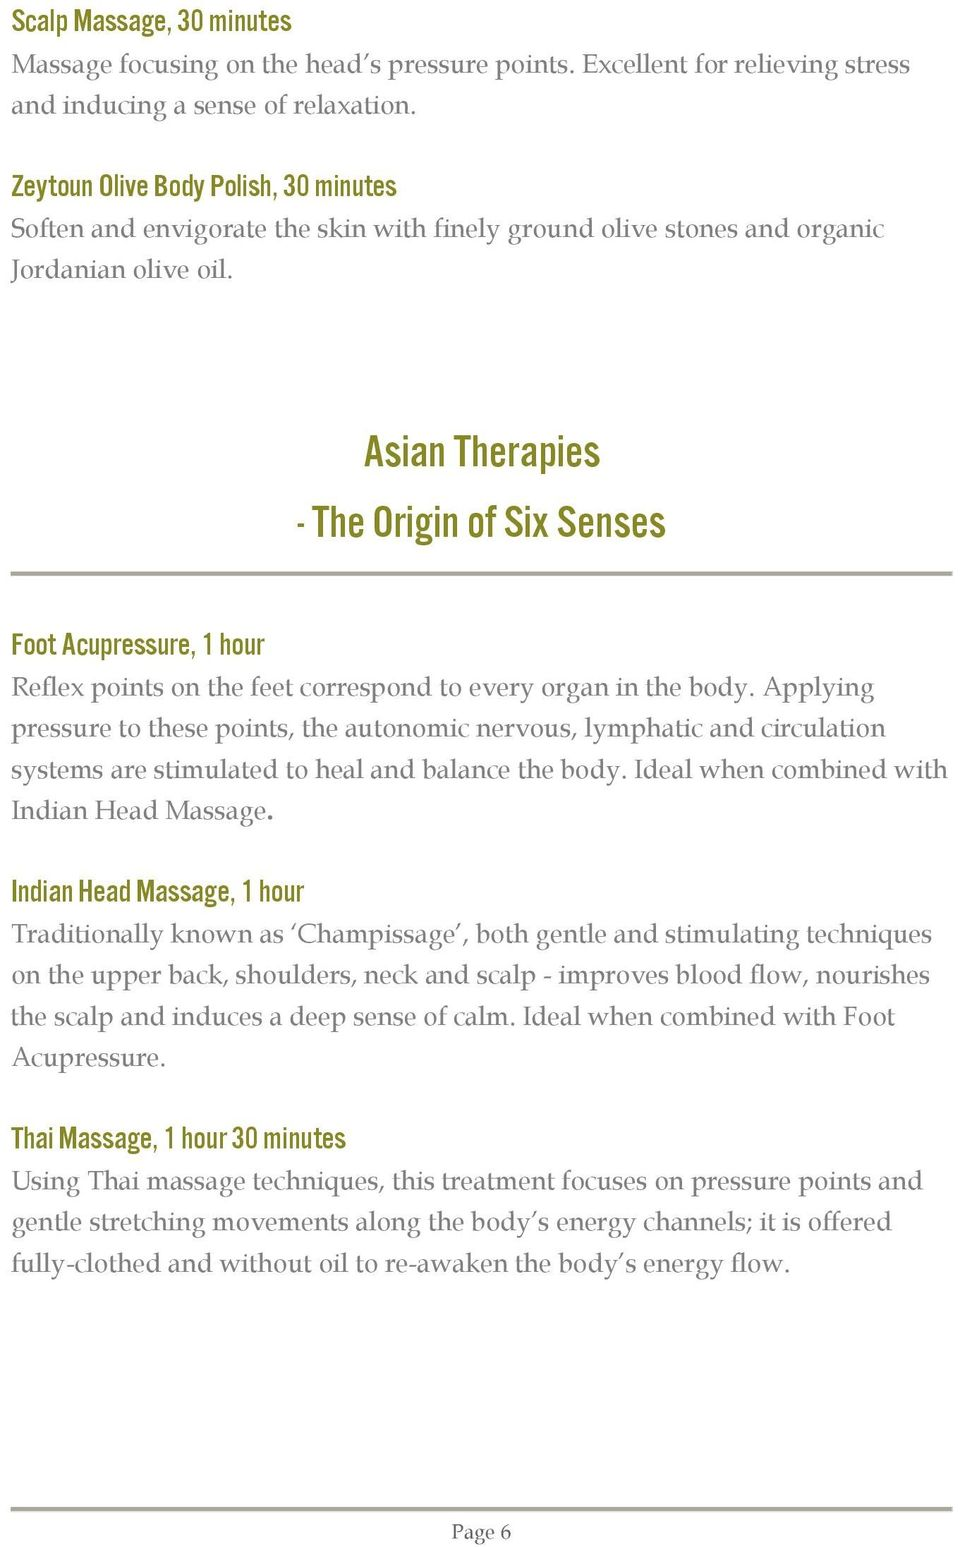 Asian Therapies - The Origin of Six Senses Foot Acupressure, 1 hour Reflex points on the feet correspond to every organ in the body.